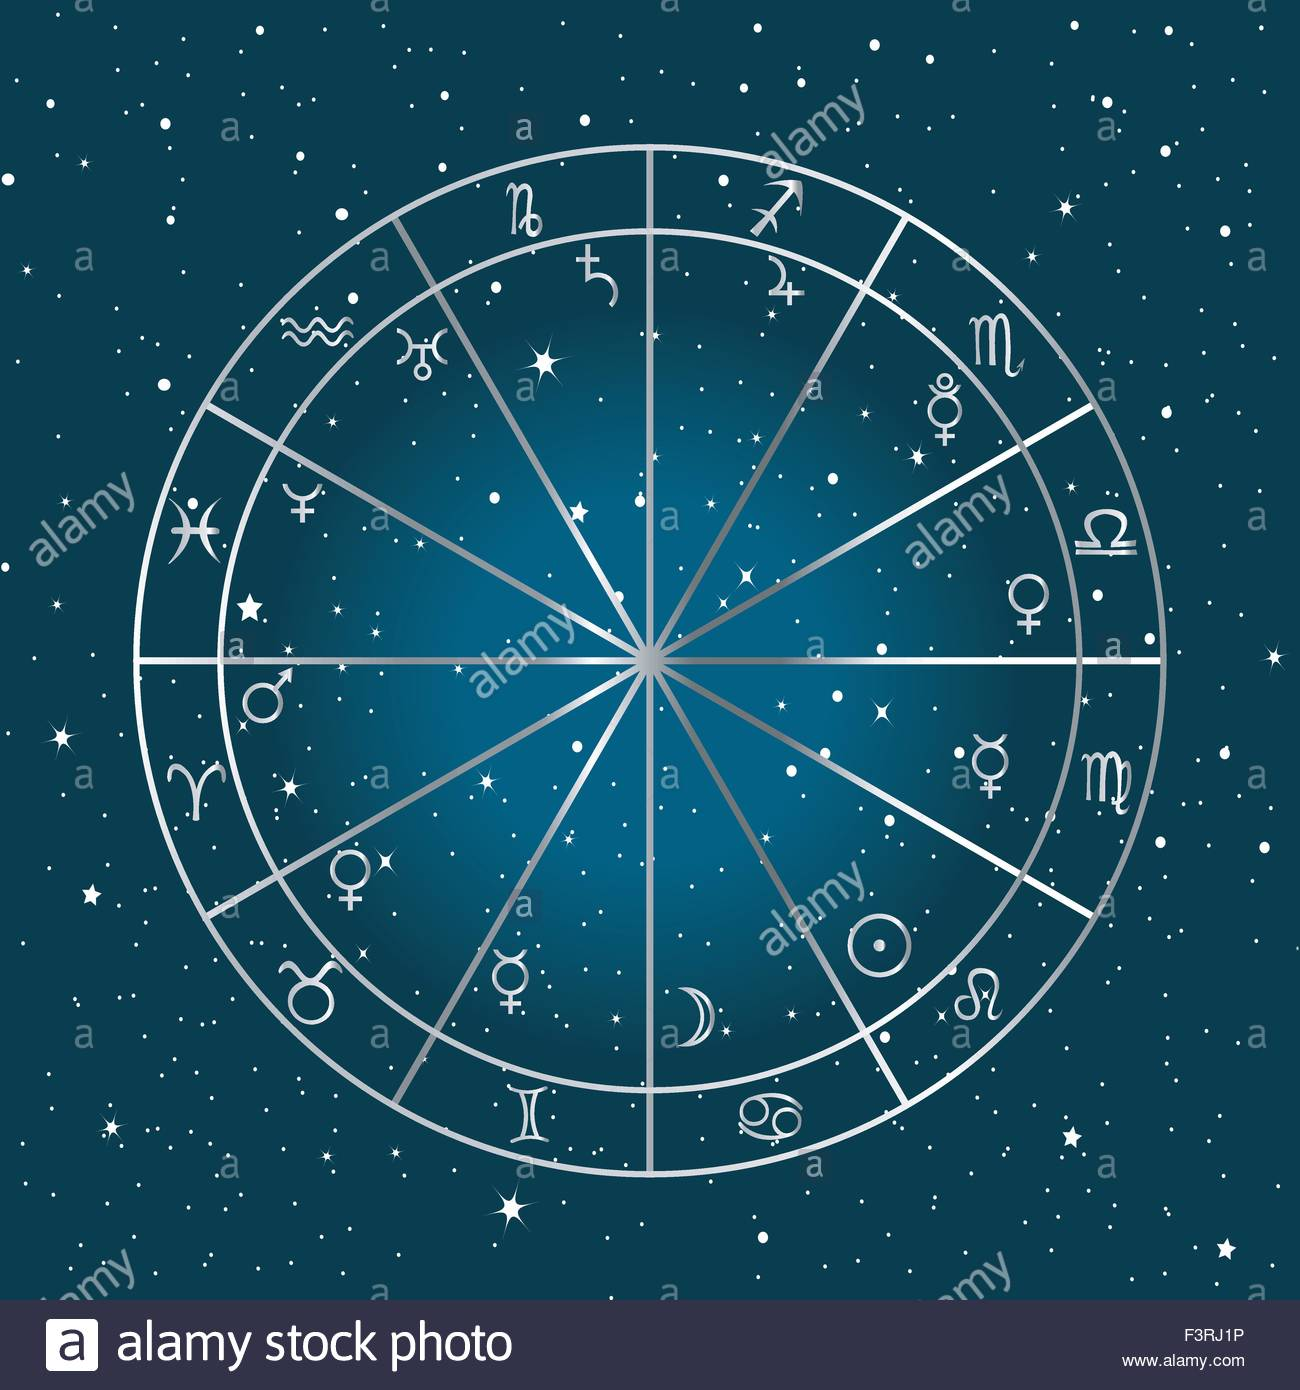 Business and Astrology